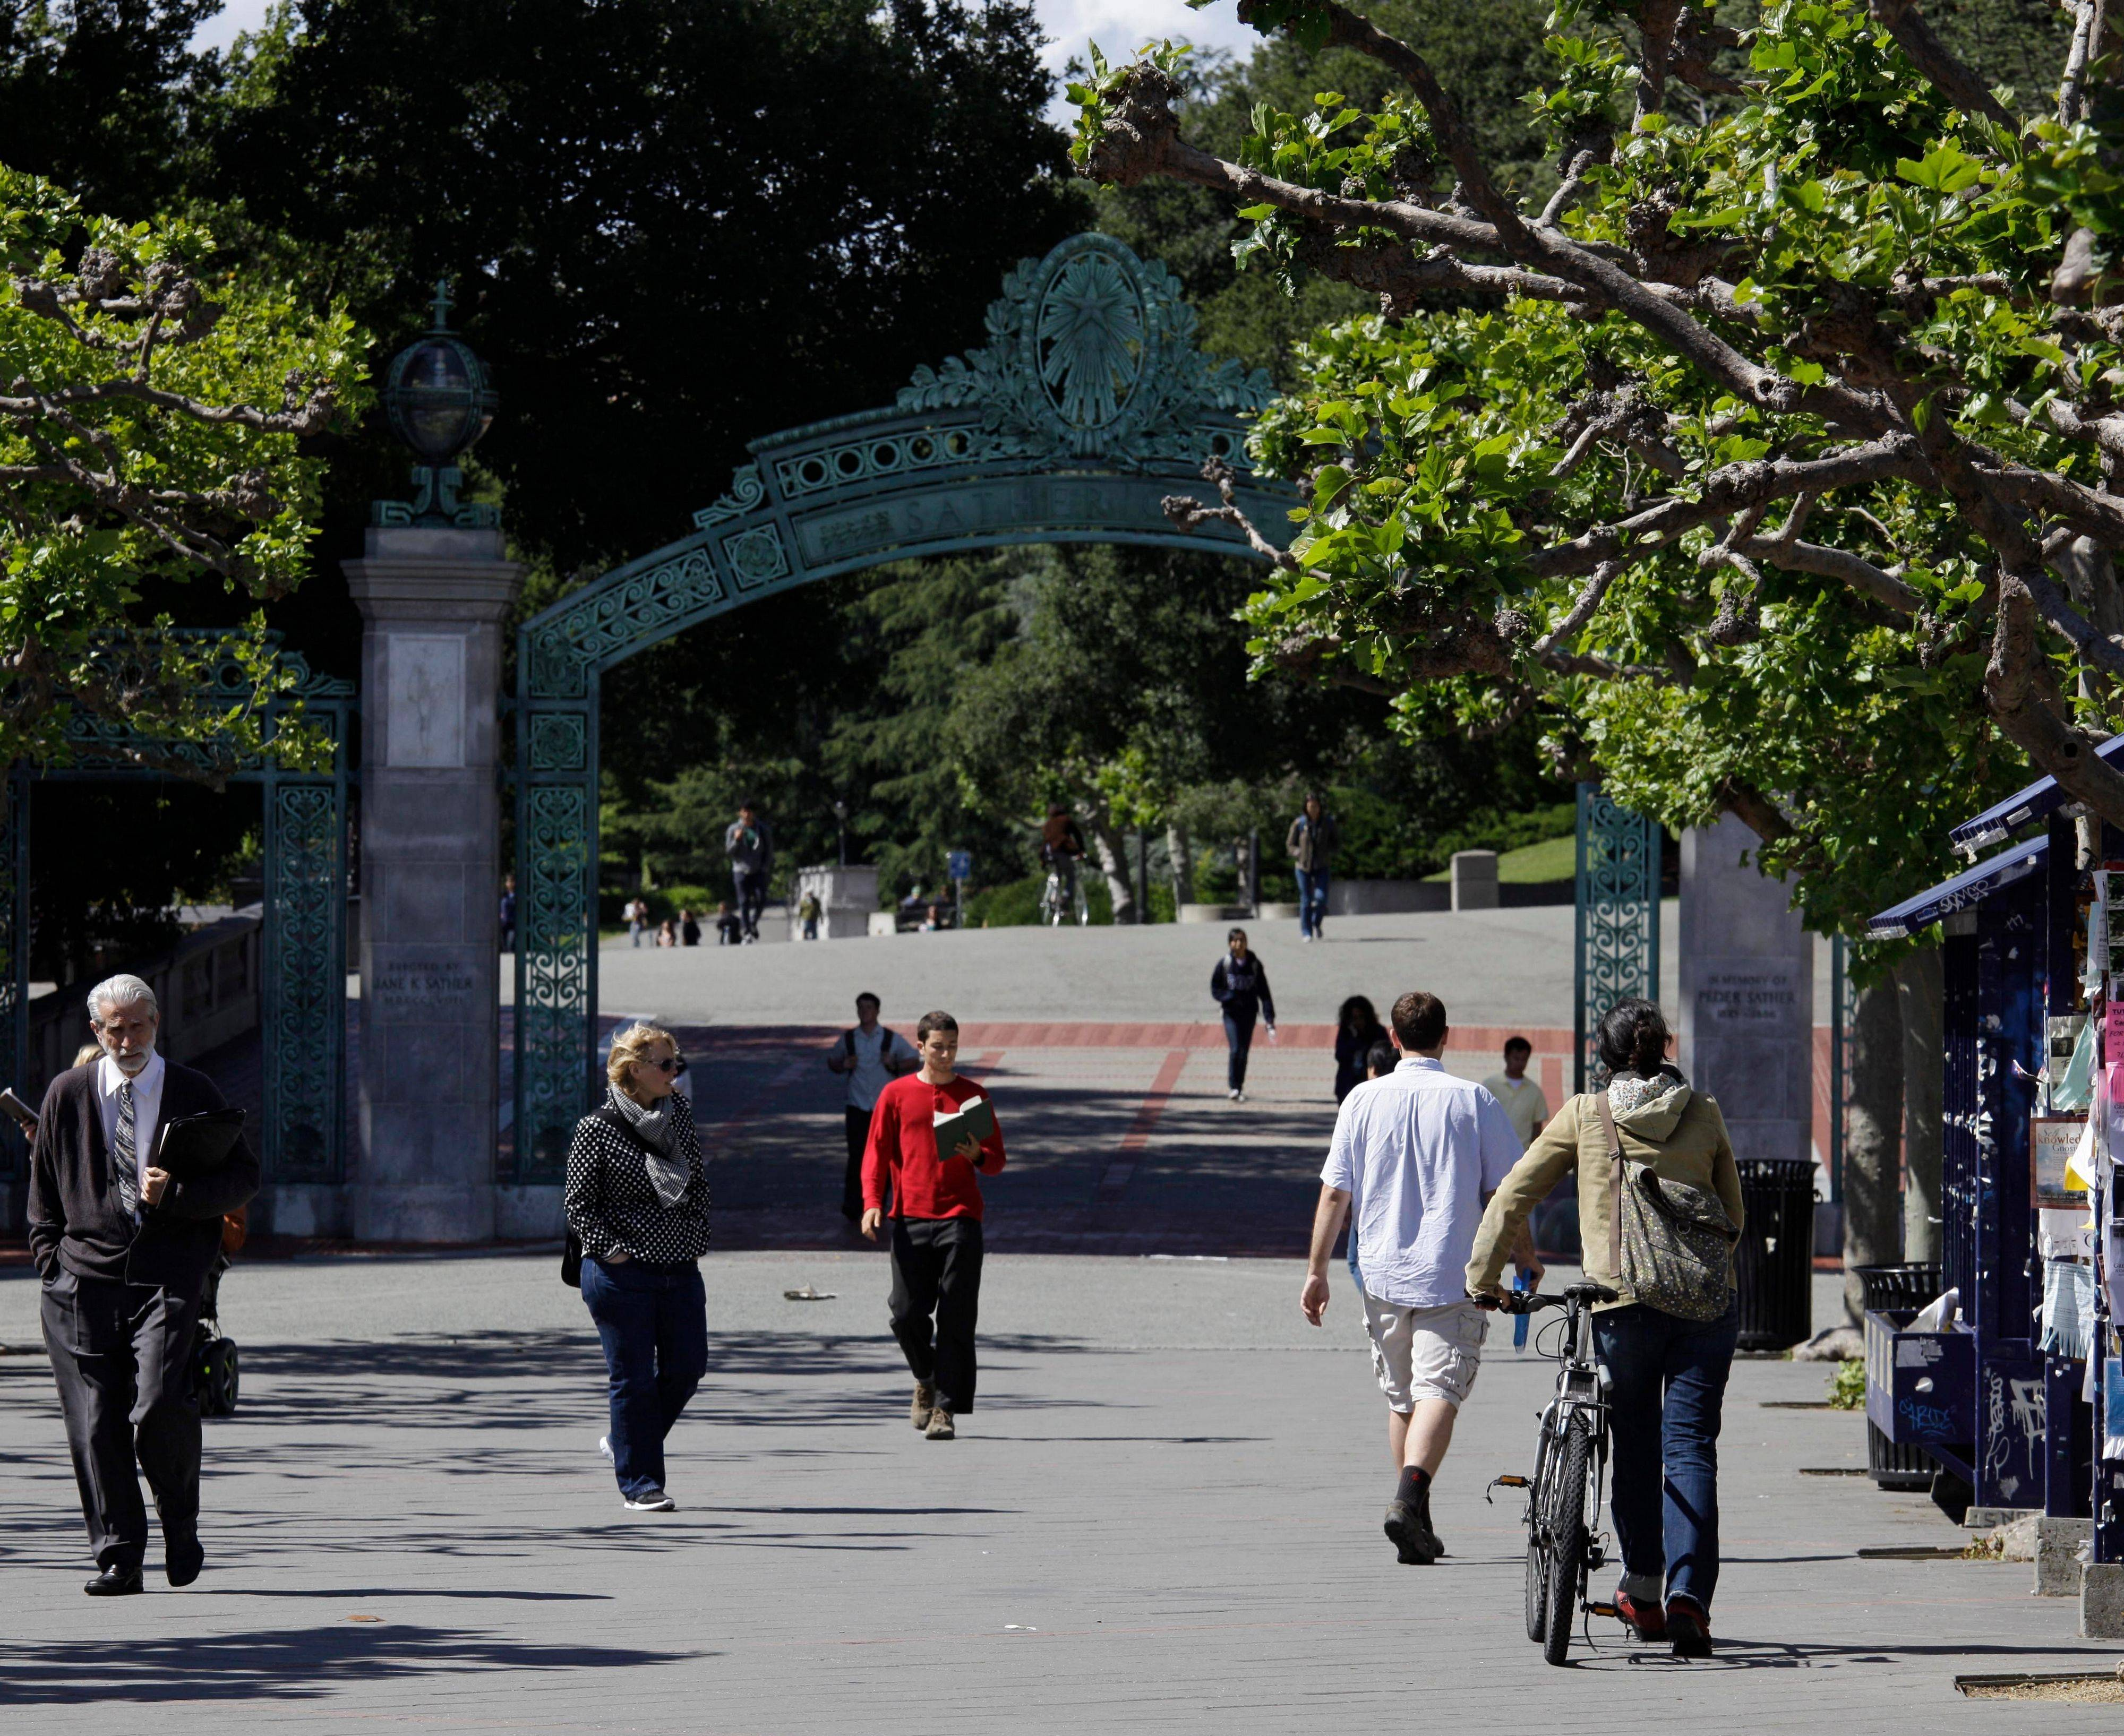 People stroll through Sproul Plaza near the Sather Gate on the University of California, Berkeley campus.